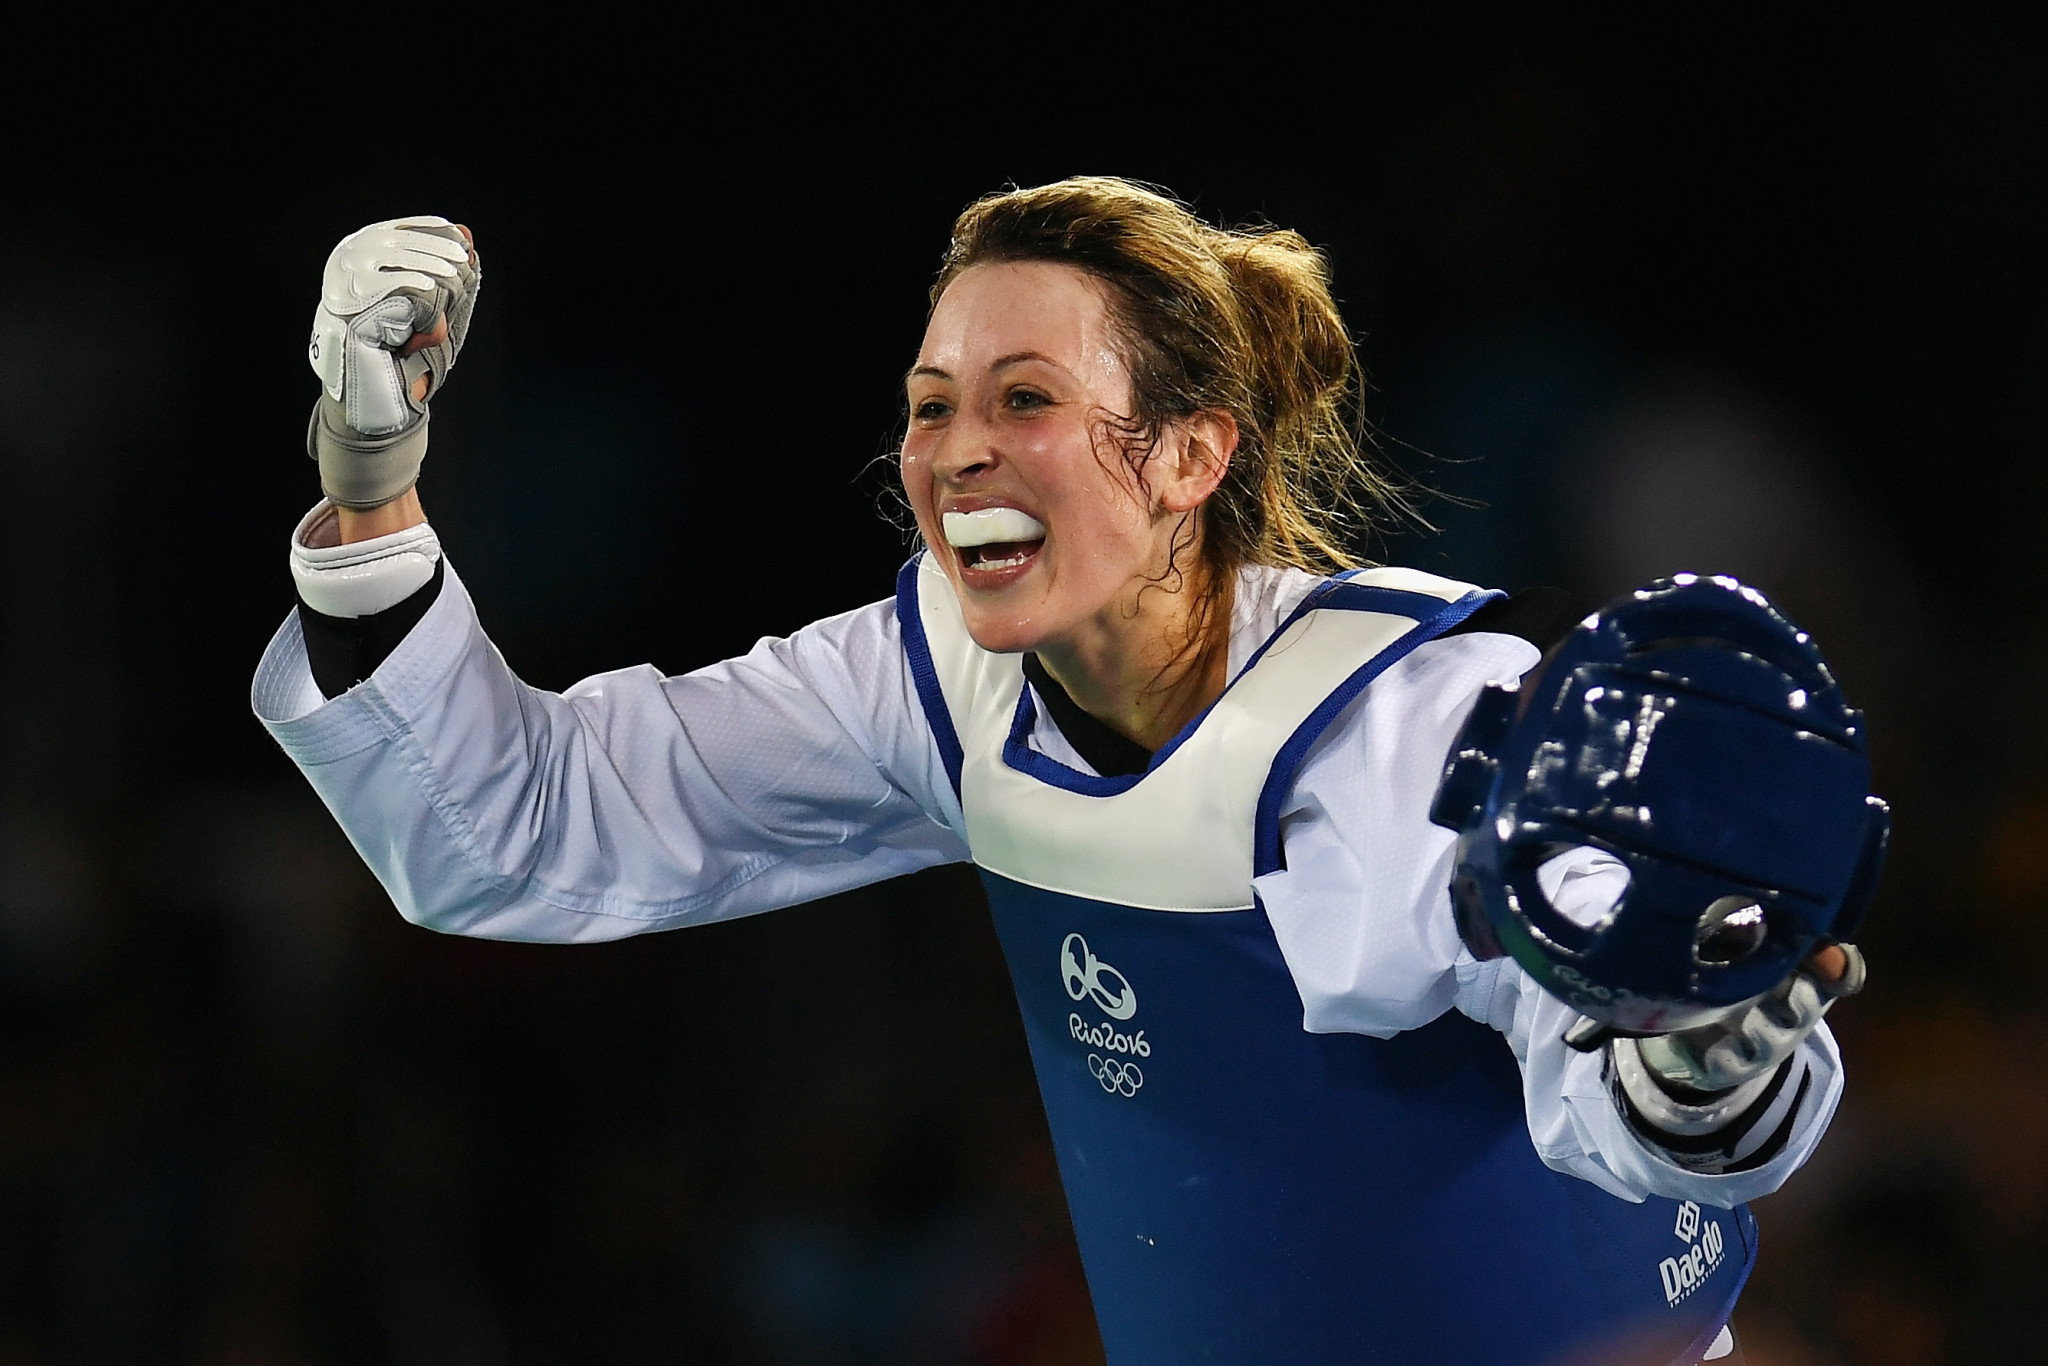 Paul Green coached Jade Jones to two Olympic gold medals ©Getty Images